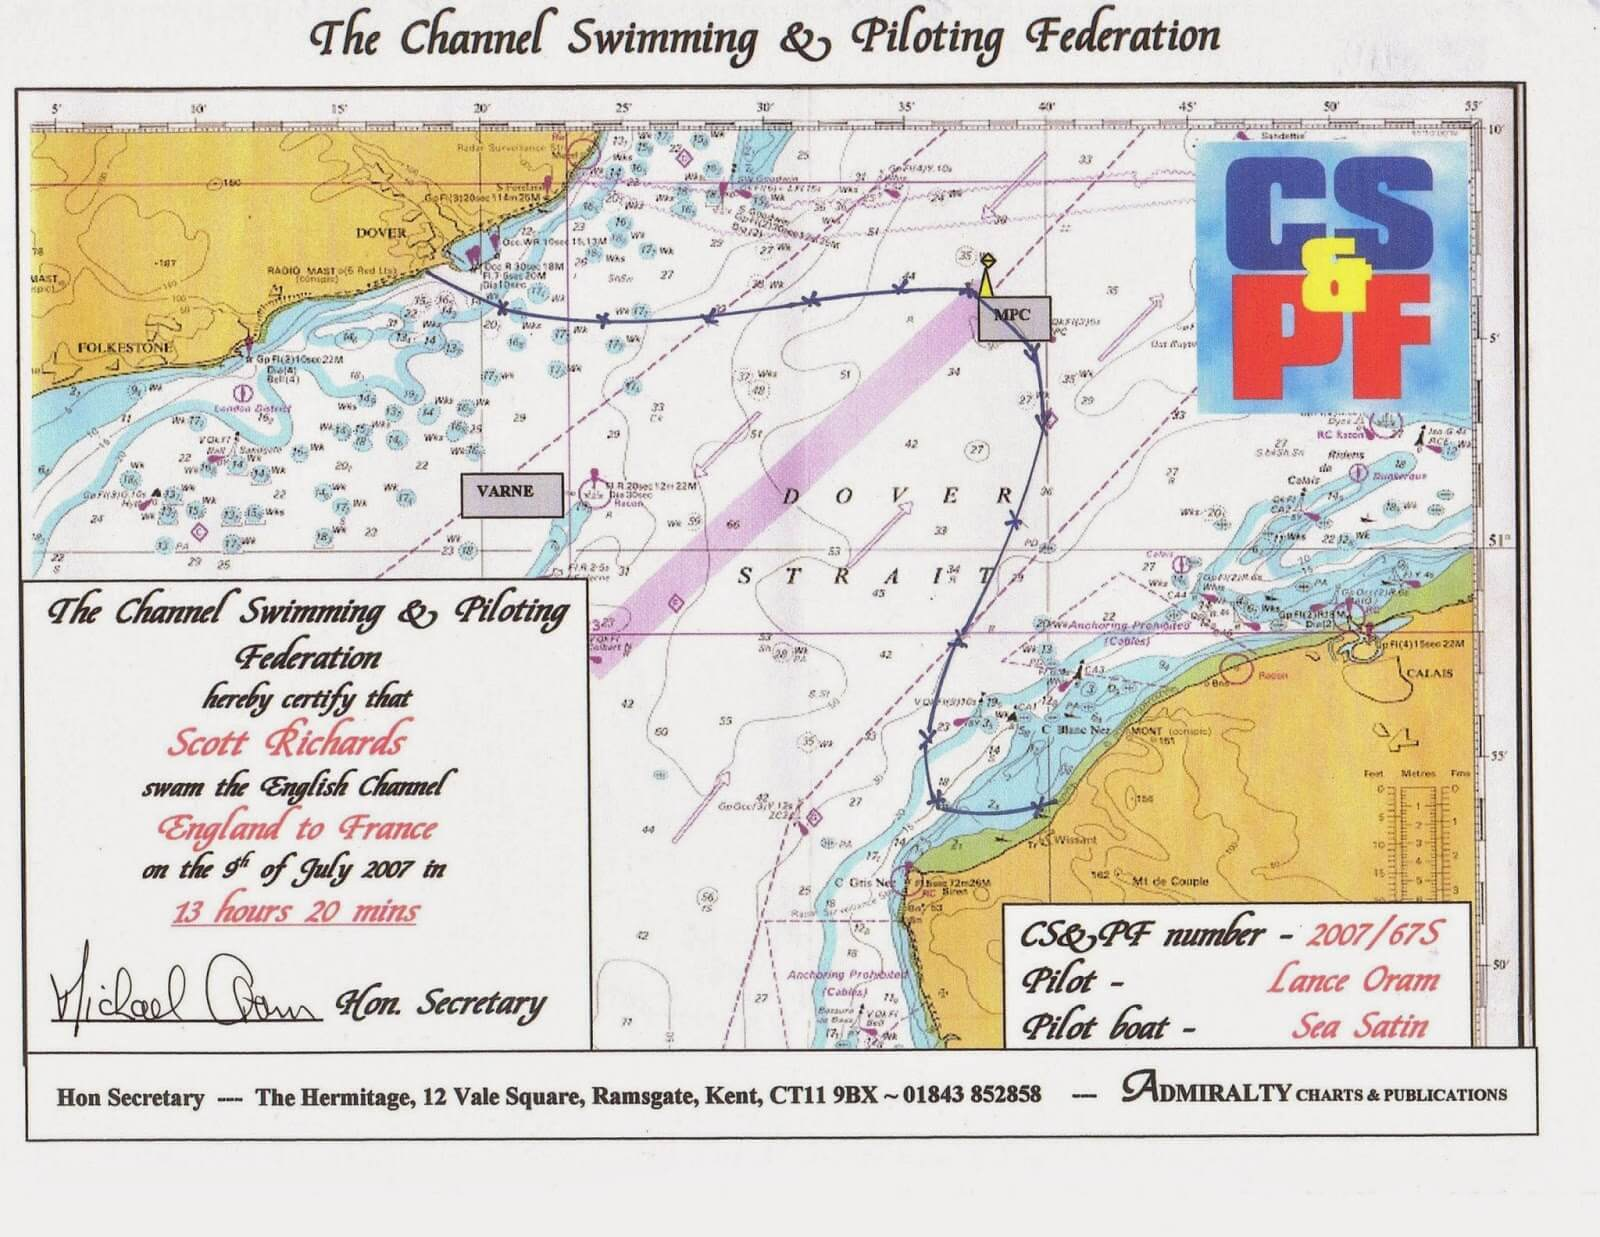 The map certifying Scott Richards' English Channel swim